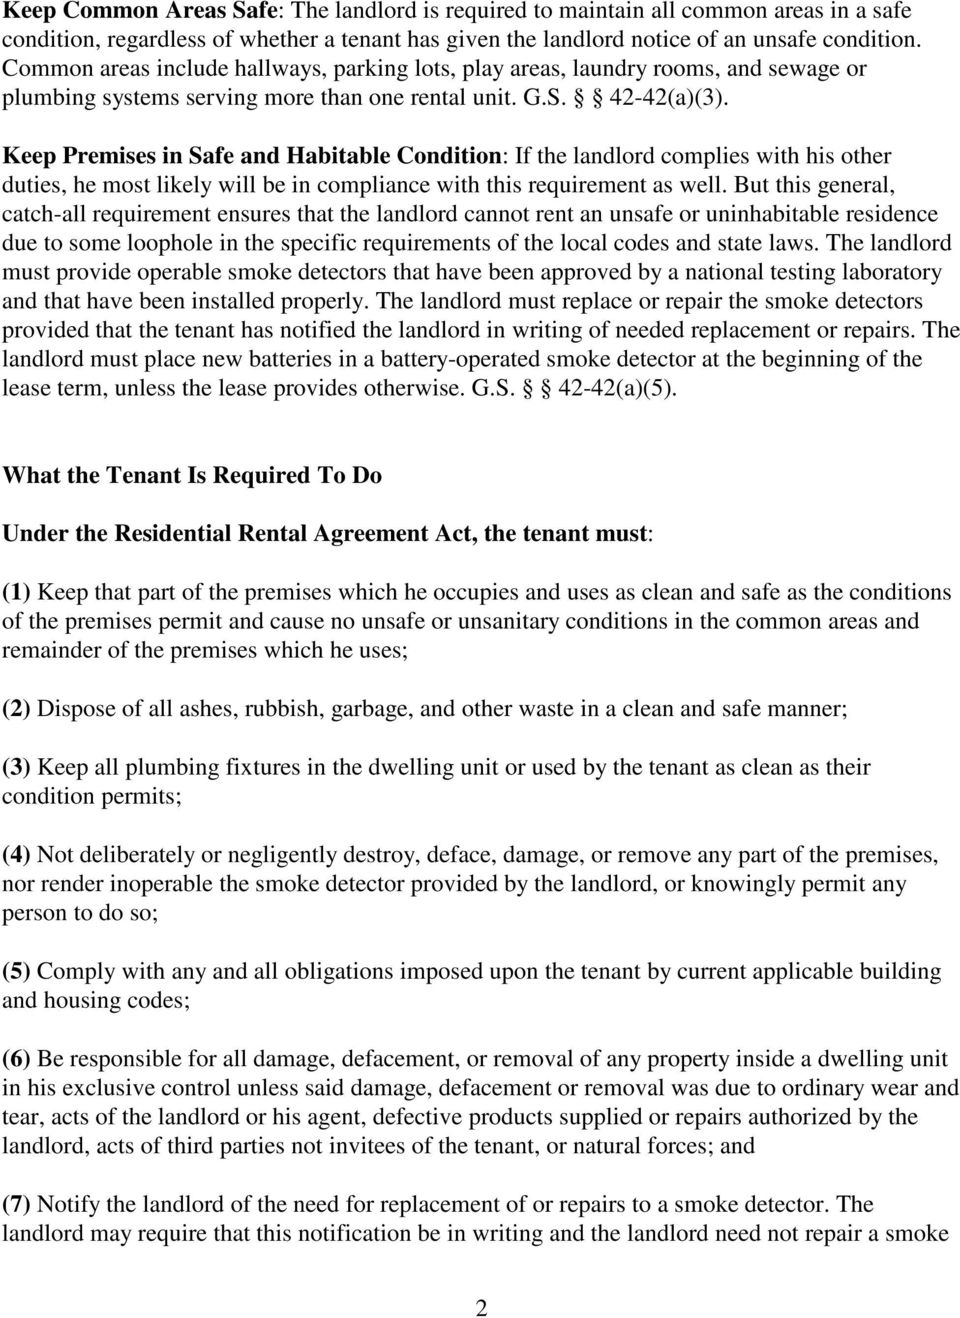 North Carolina S Residential Rental Agreement Act Pdf